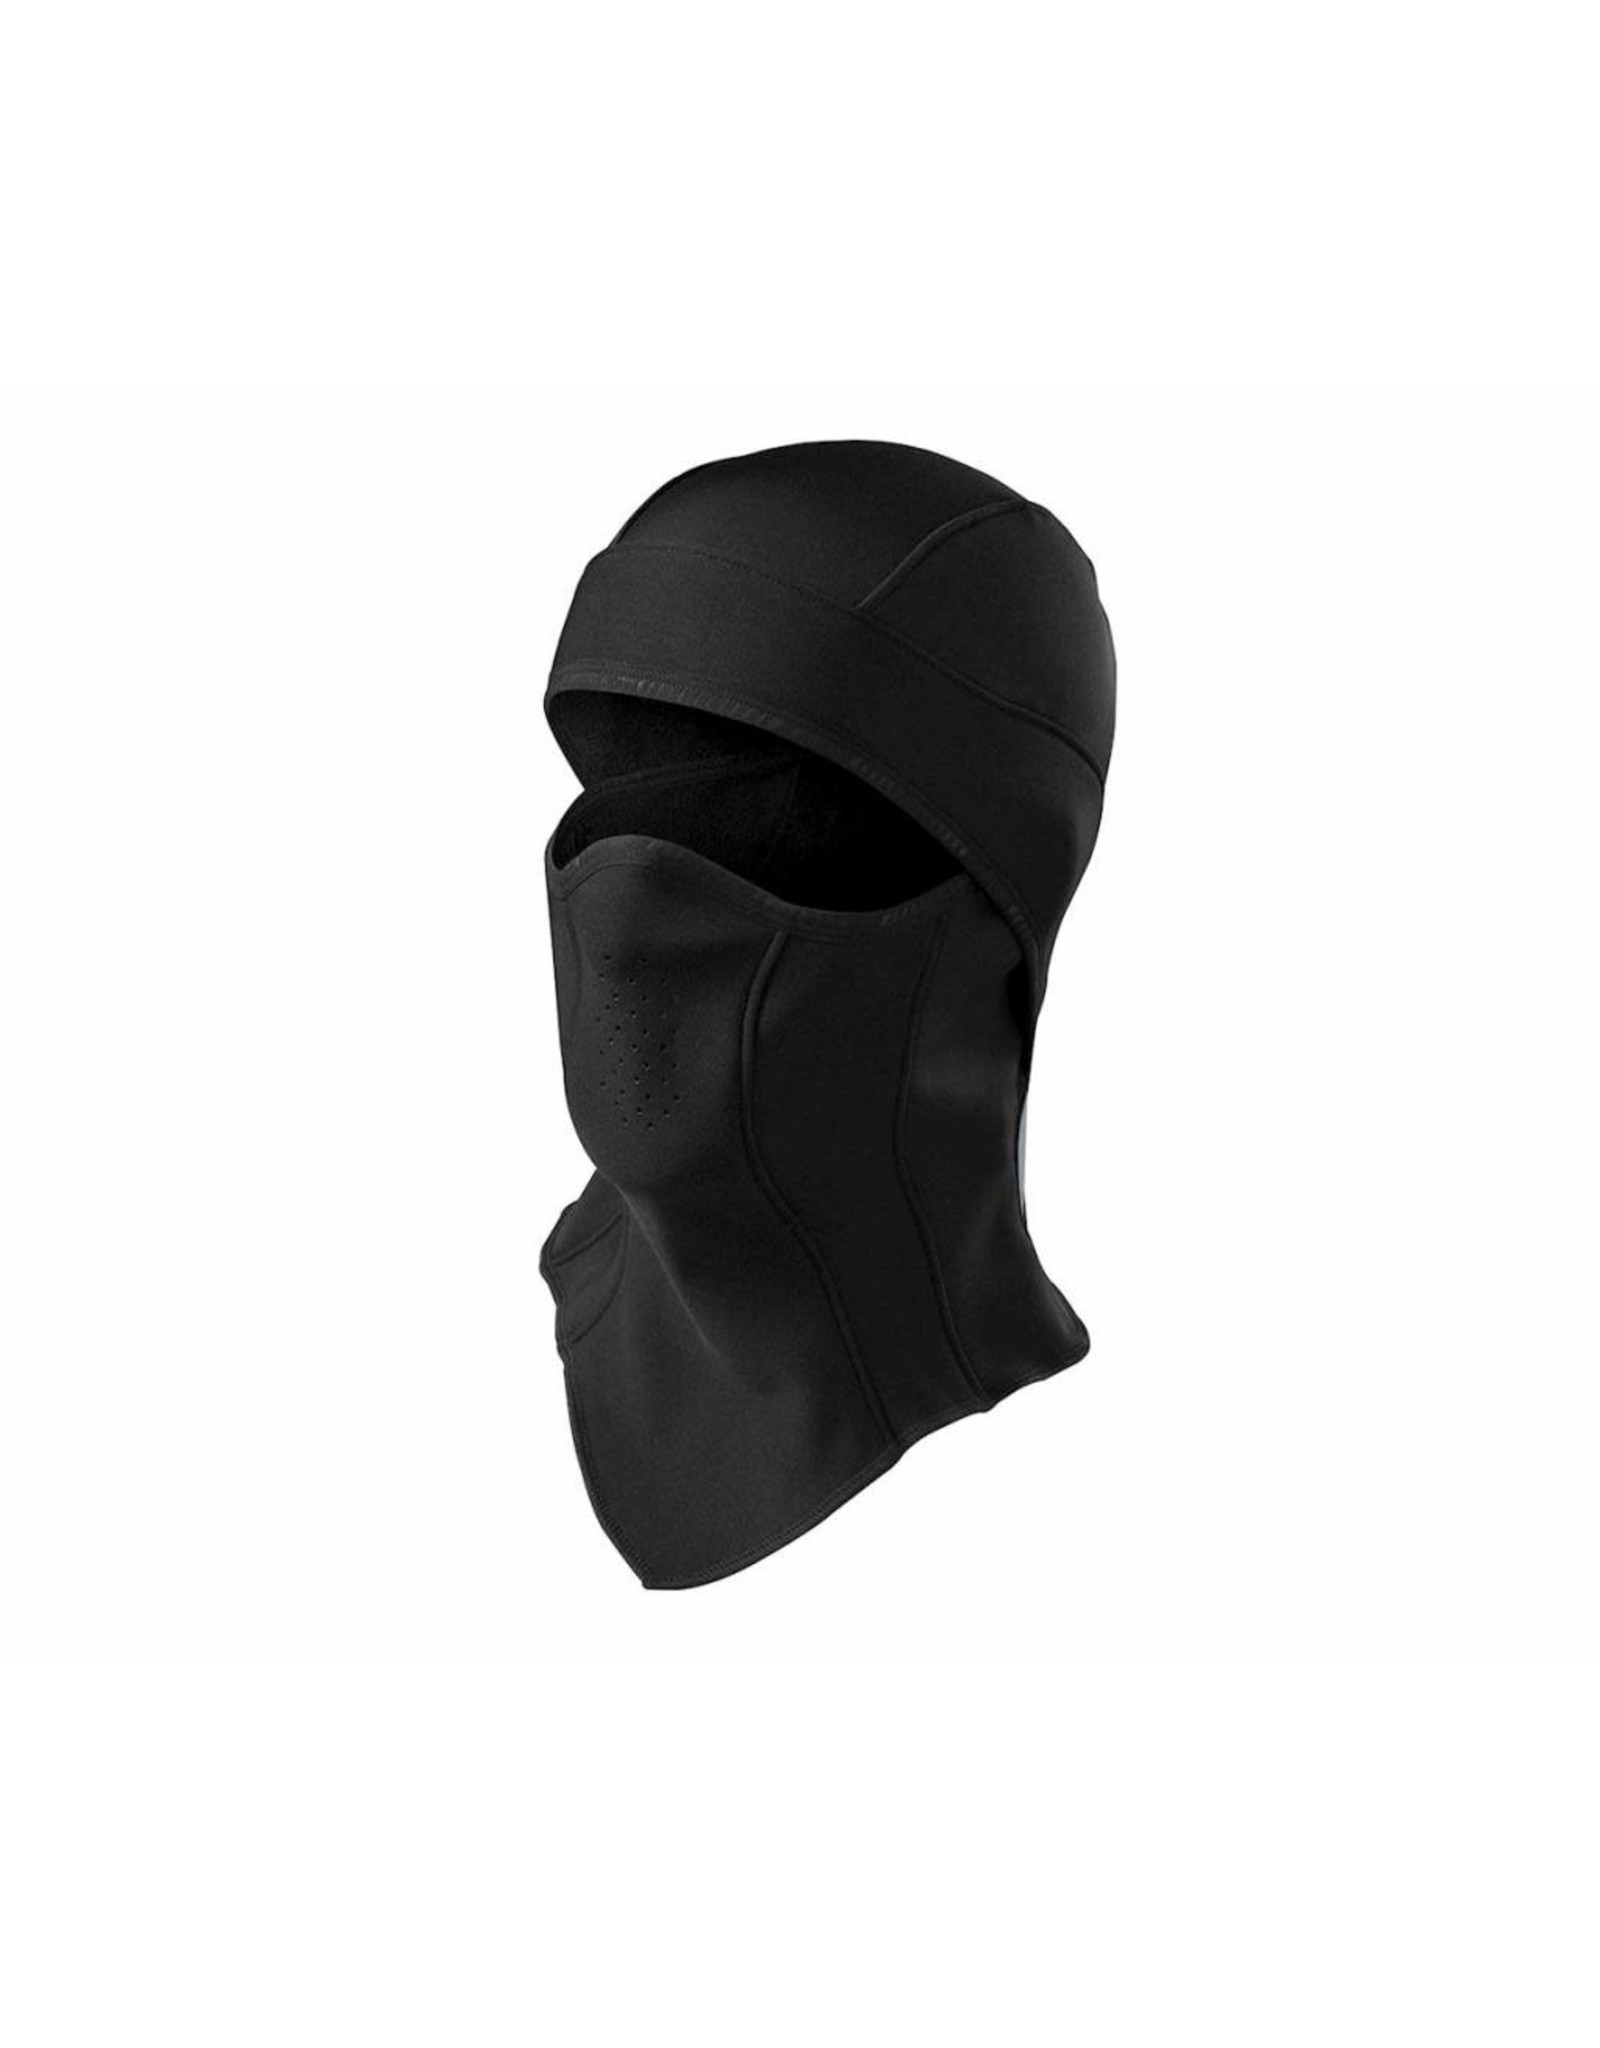 SPECIALIZED Specialized Element Balaclava - Black - S/M